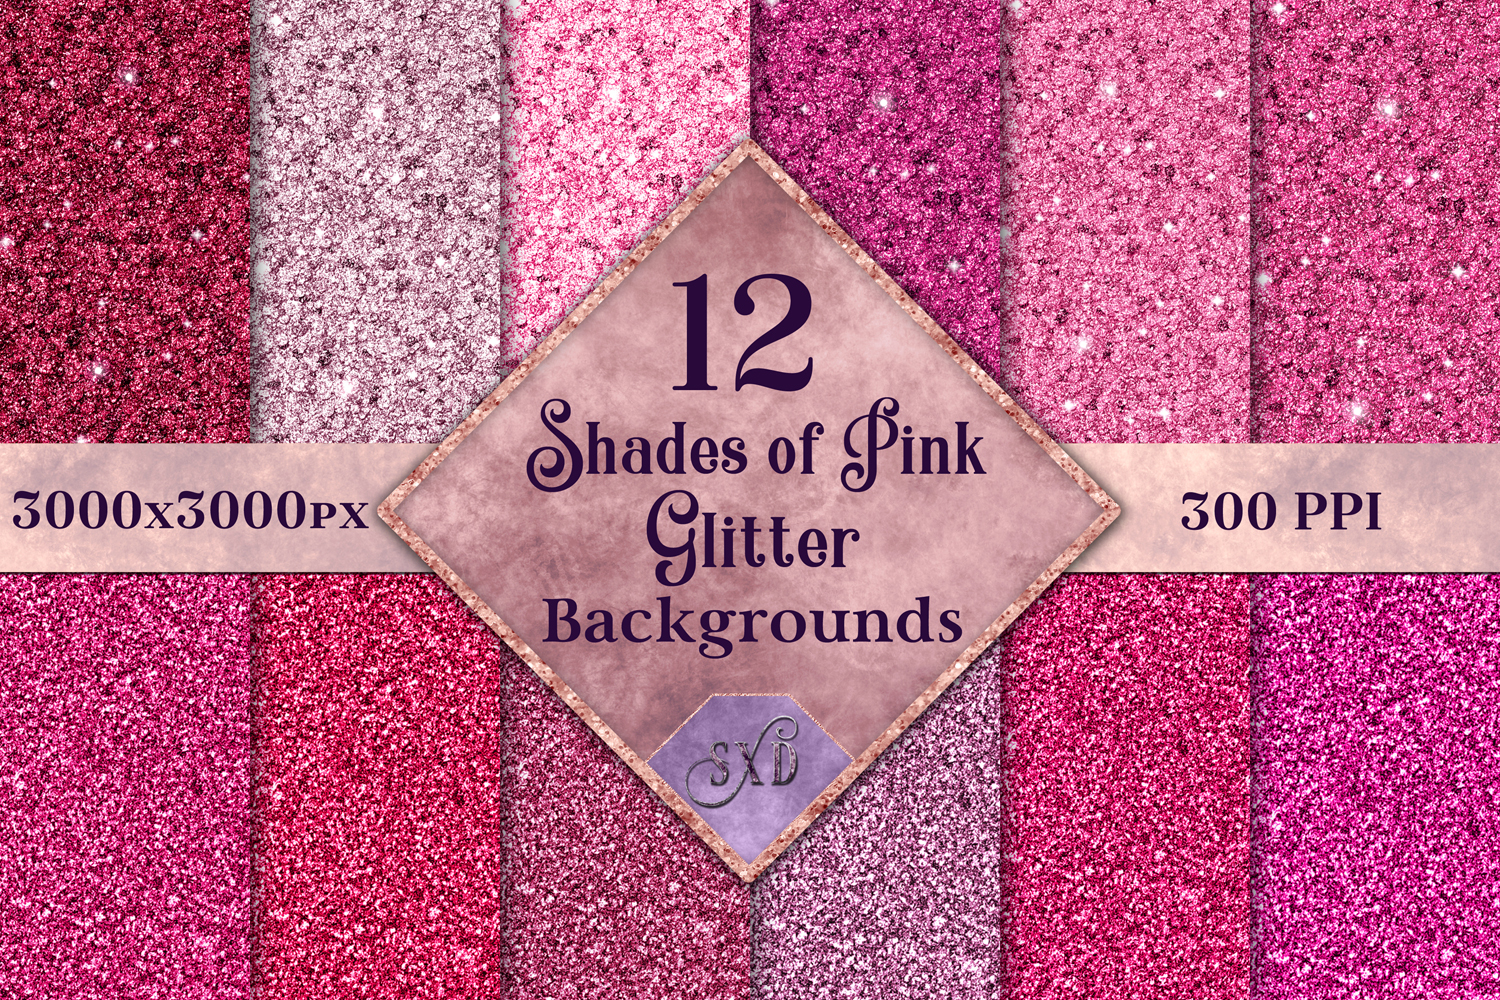 Shades of Pink Glitter - 12 Background Image Textures example image 1